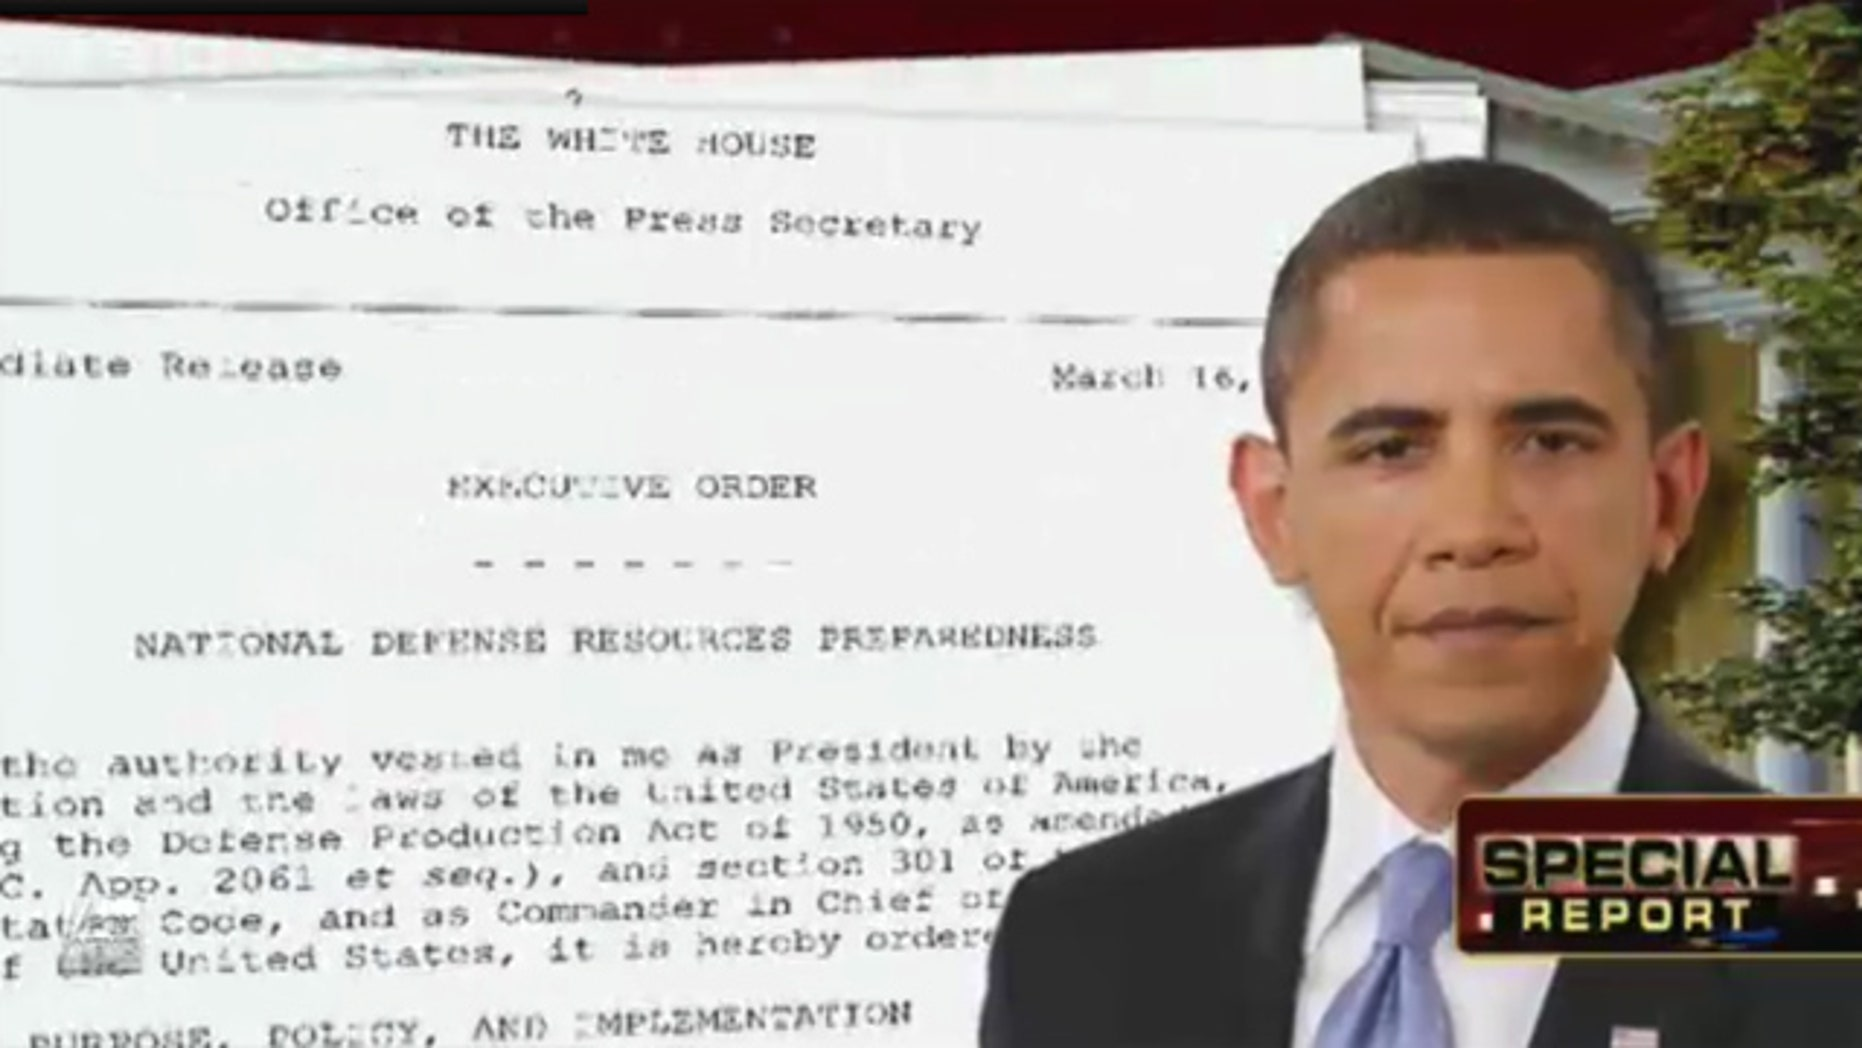 Obama Raises Eyebrows With Executive Order Revising Authority To